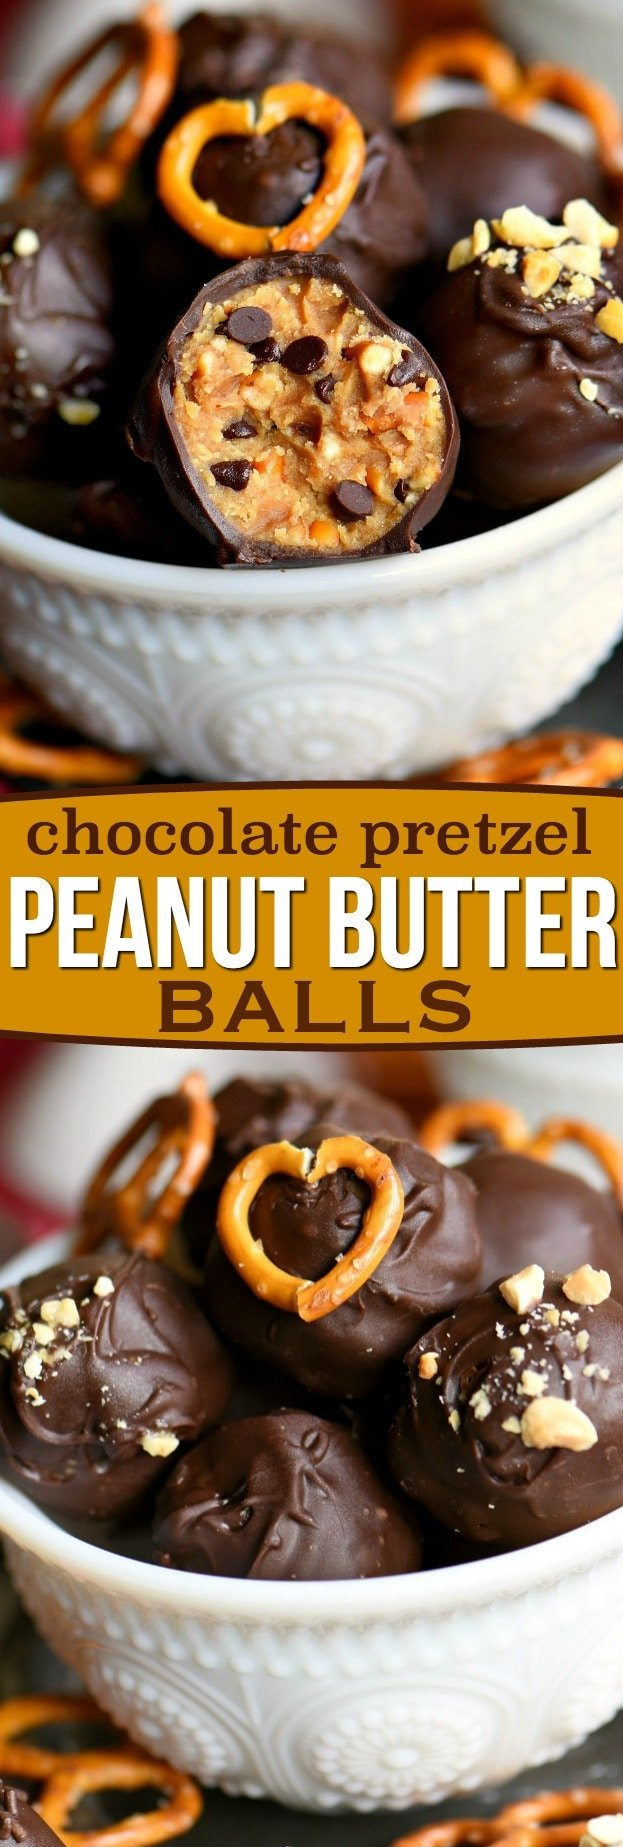 Peanut Butter Balls are taken to the next level with the addition of pretzels in this easy Chocolate Pretzel Peanut Butter Balls recipe. The creamy, crunchy, salty, sweet combination is the best of all worlds. Extra delicious and loaded with peanut butter, chocolate chips, and pretzels! // Mom On Timeout #peanutbutter #balls #peanut #butter #chocolate #pretzels #creamcheese #candy #candies #recipe #sweets #dessert #desserts #truffles